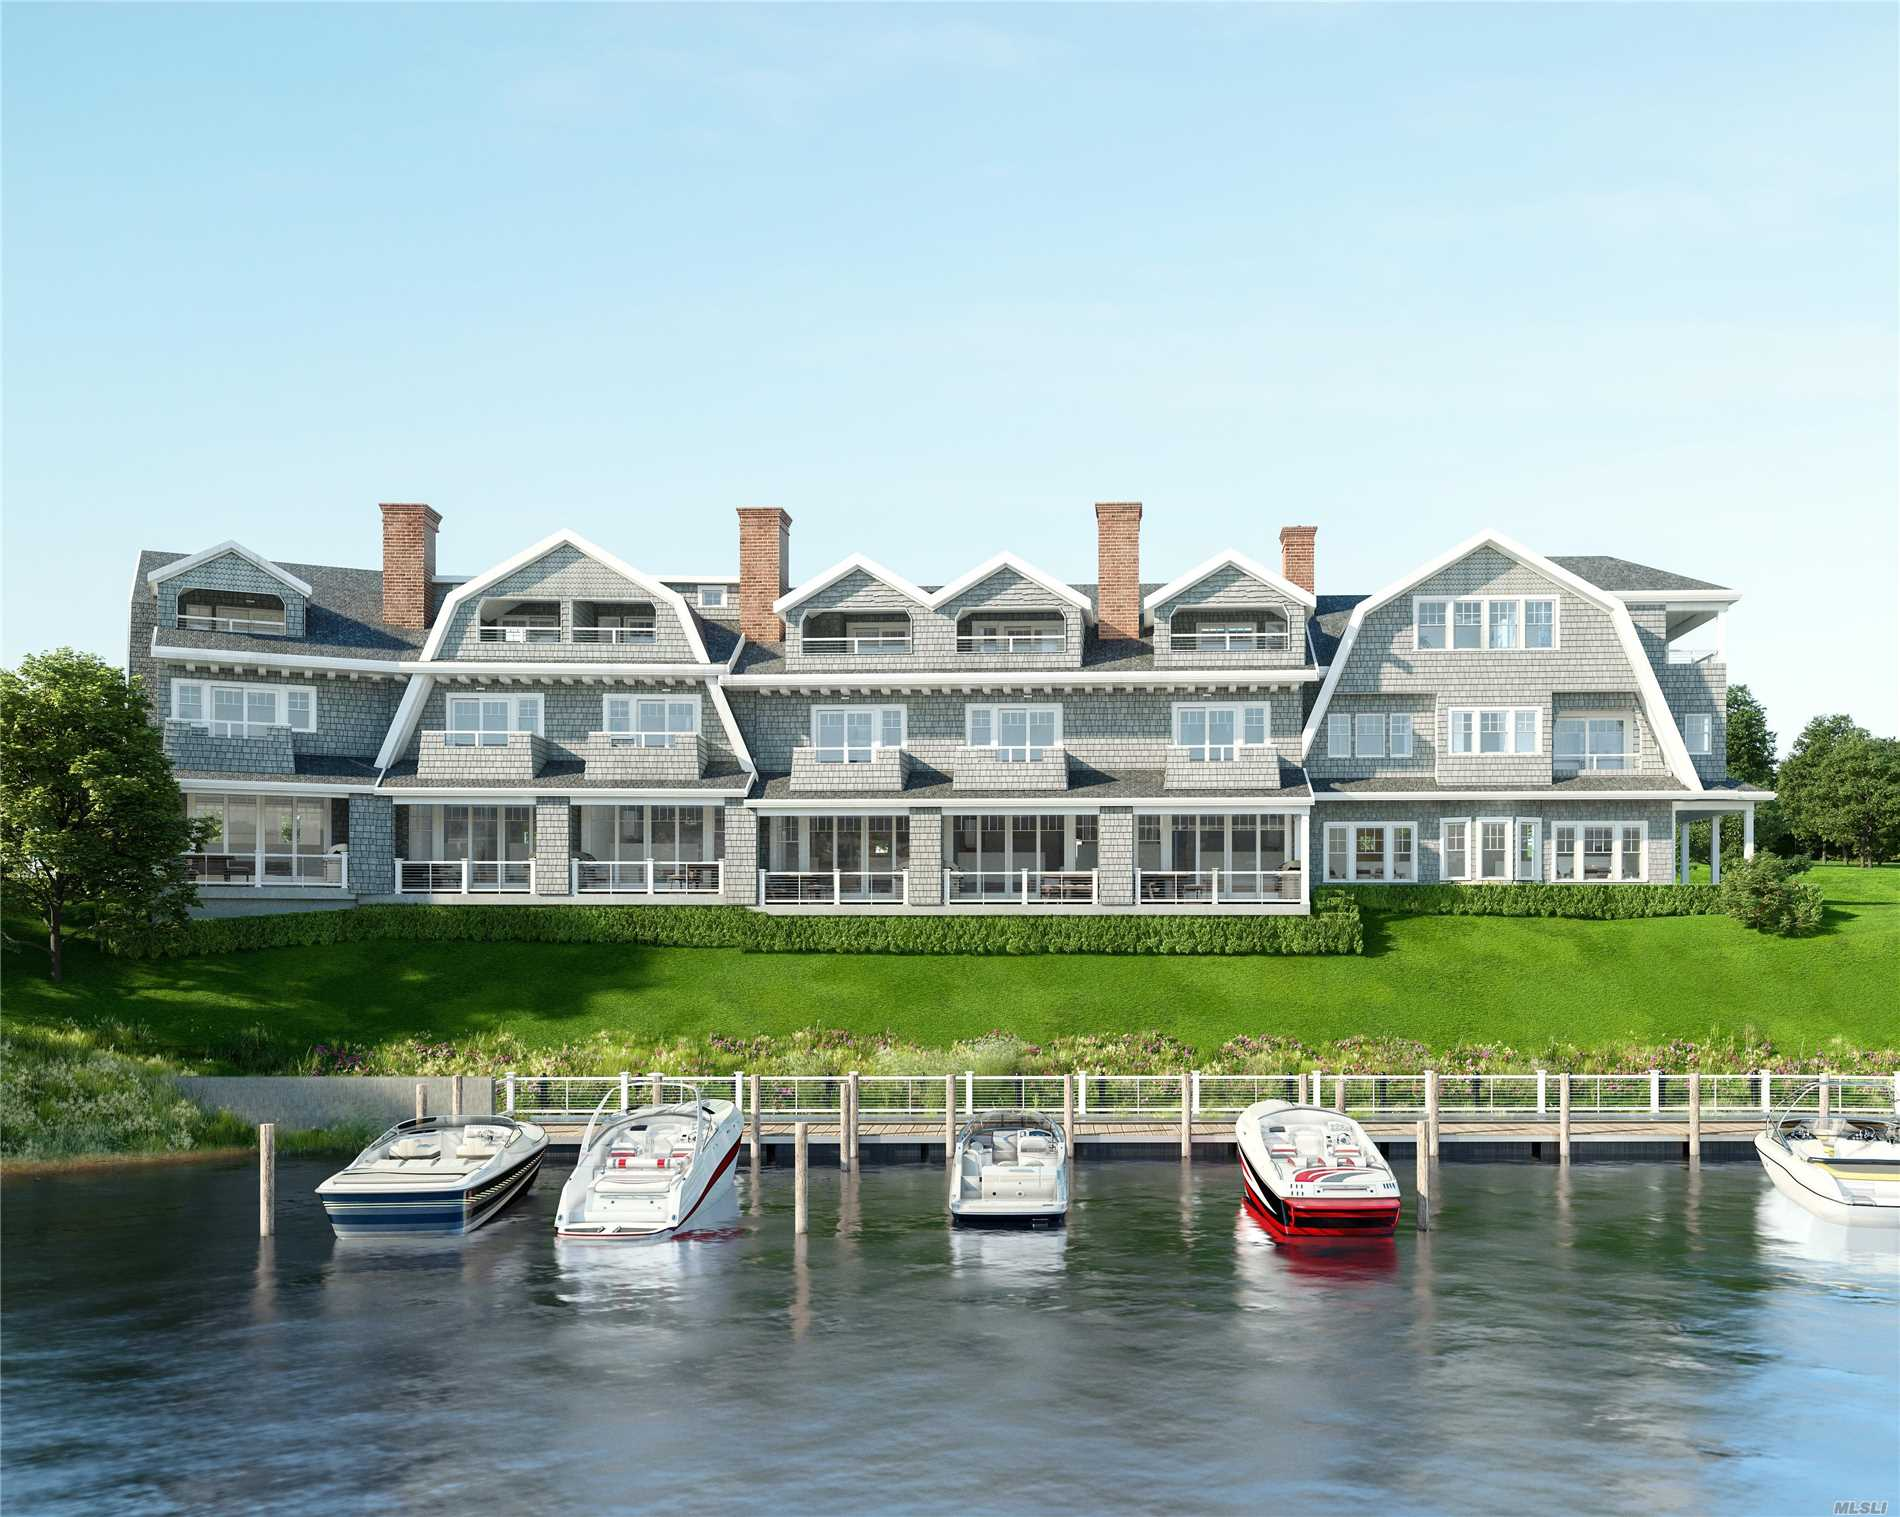 Property for sale at 55 Old Boathouse Lane # 205, Hampton Bays NY 11946, Hampton Bays,  New York 11946